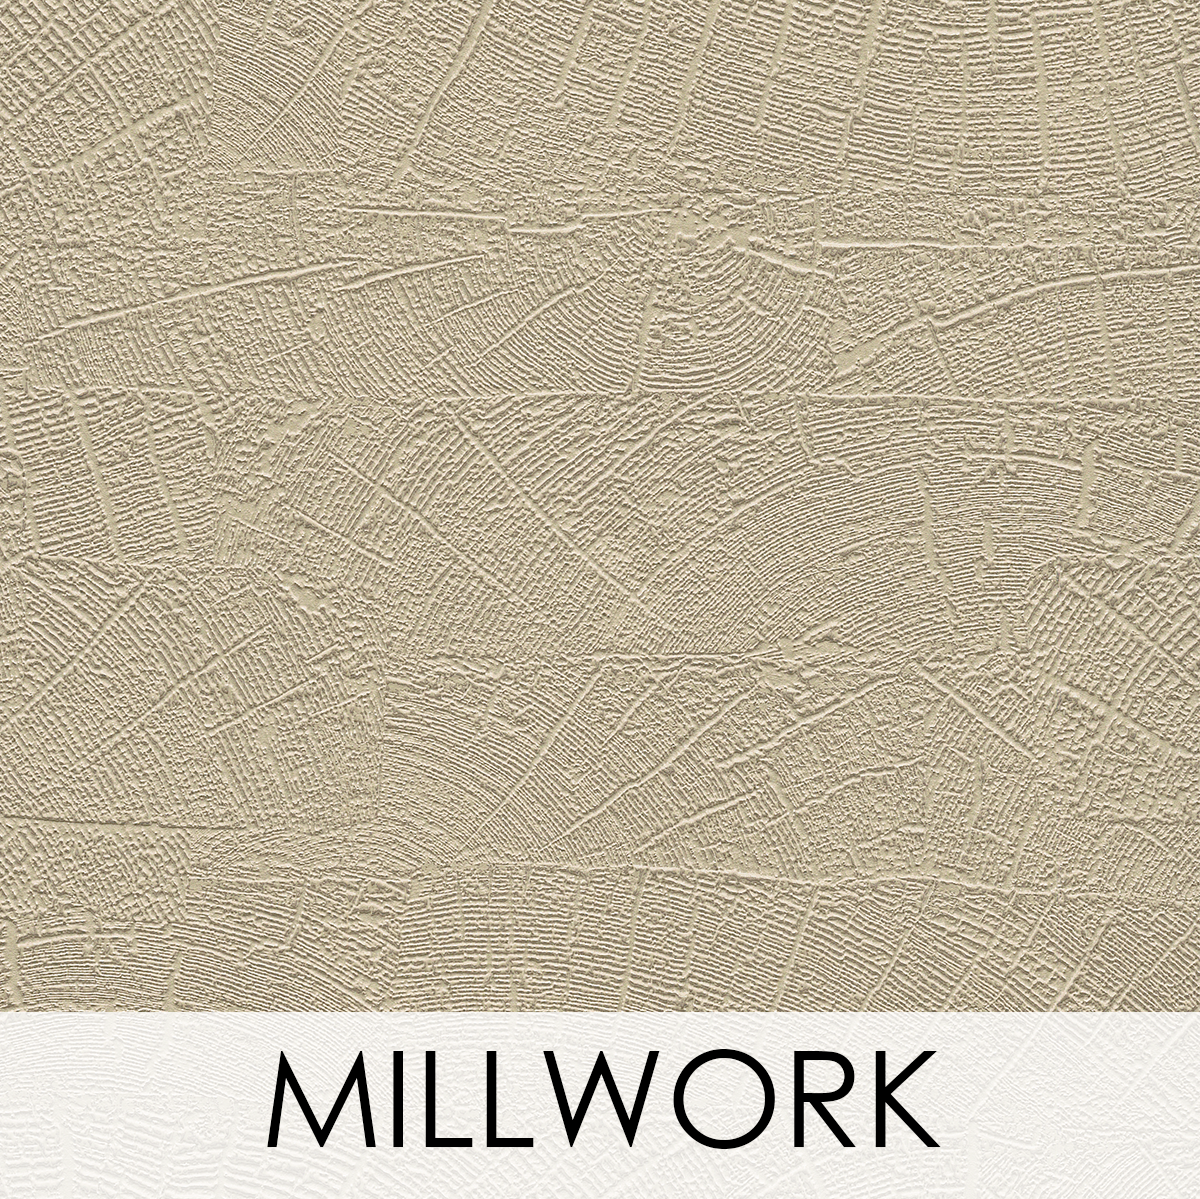 Millwork Wallcovering